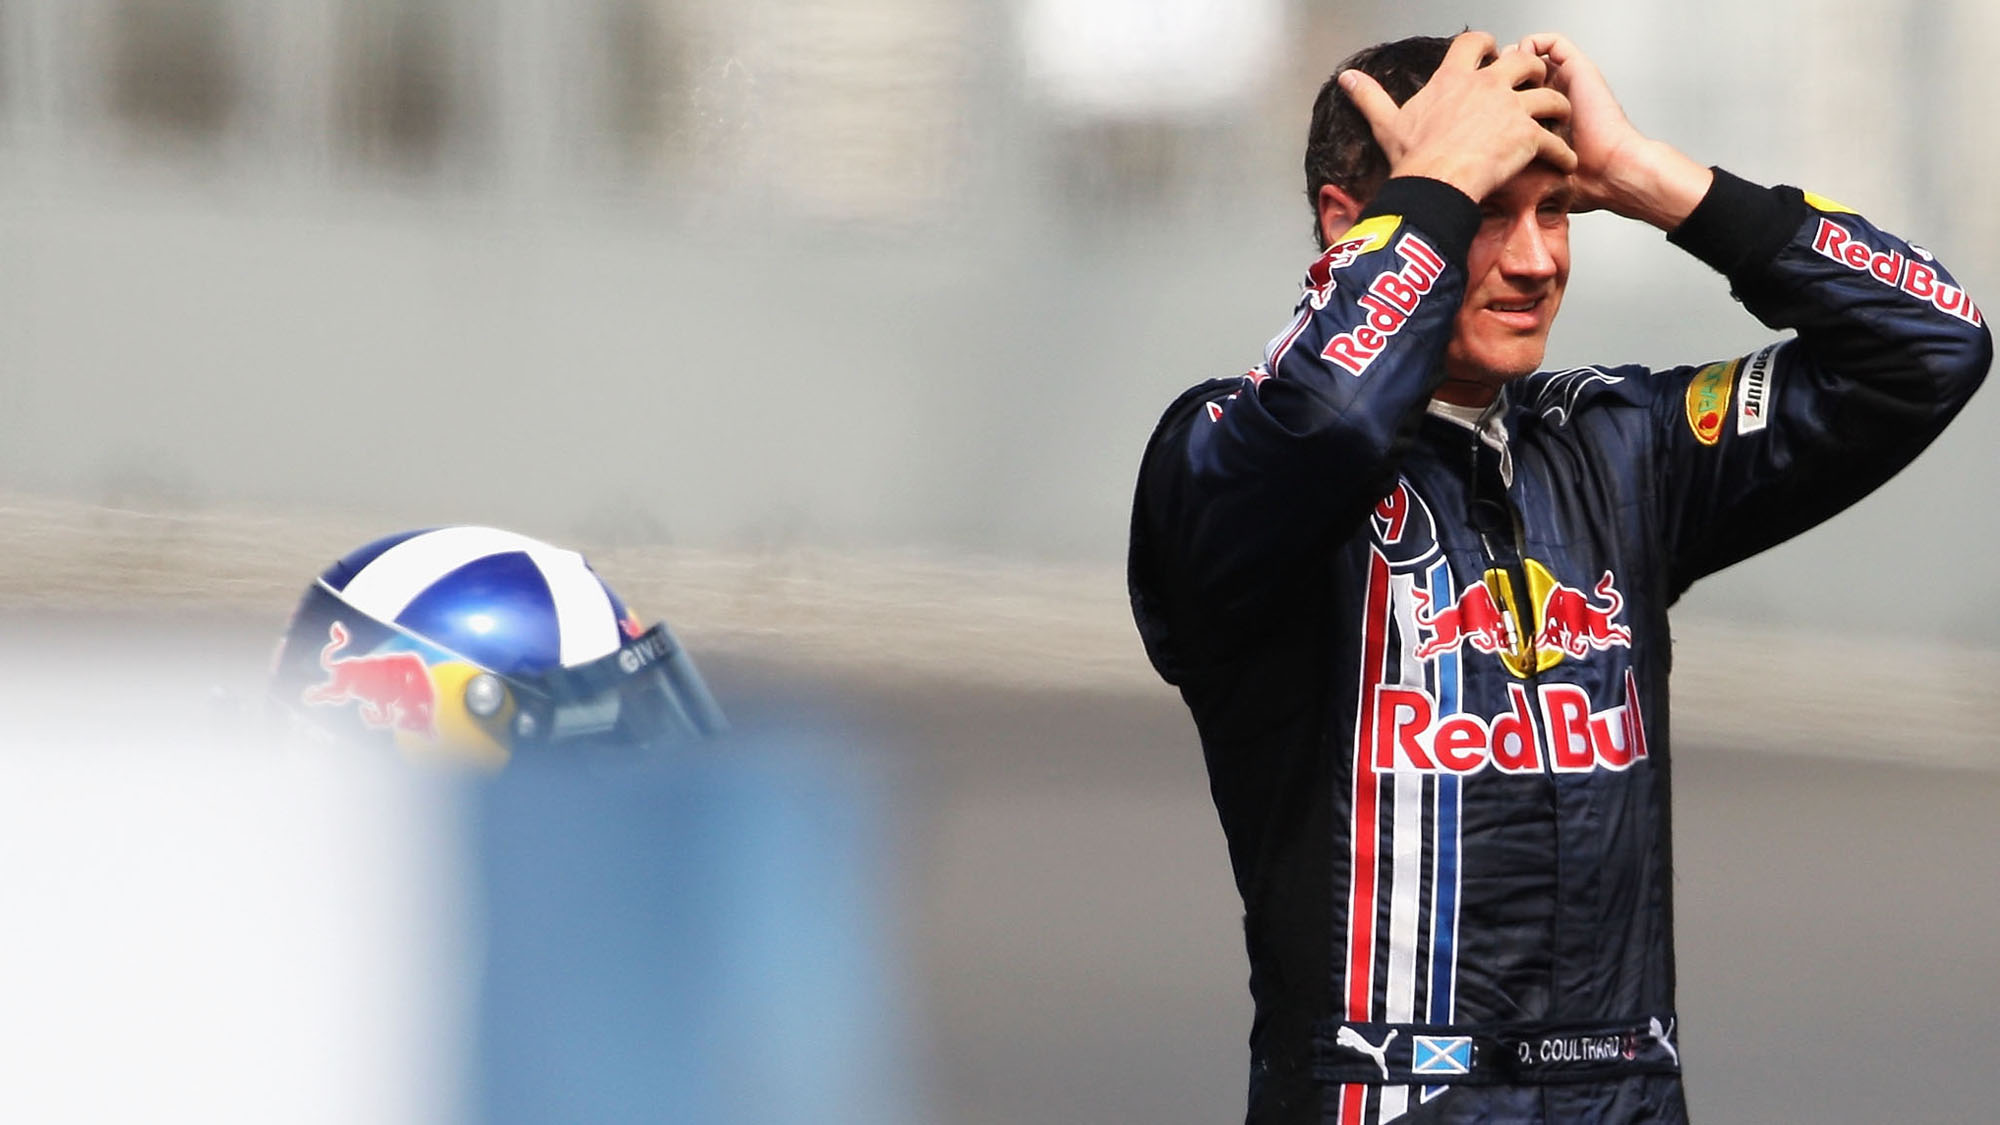 VALENCIA, SPAIN - AUGUST 22: David Coulthard of Great Britain and Red Bull Racing looks on after he crashes during practice for the European Formula One Grand Prix at the Valencia Street Circuit on August 22, 2008, in Valencia, Spain. (Photo by Bryn Lennon/Getty Images)